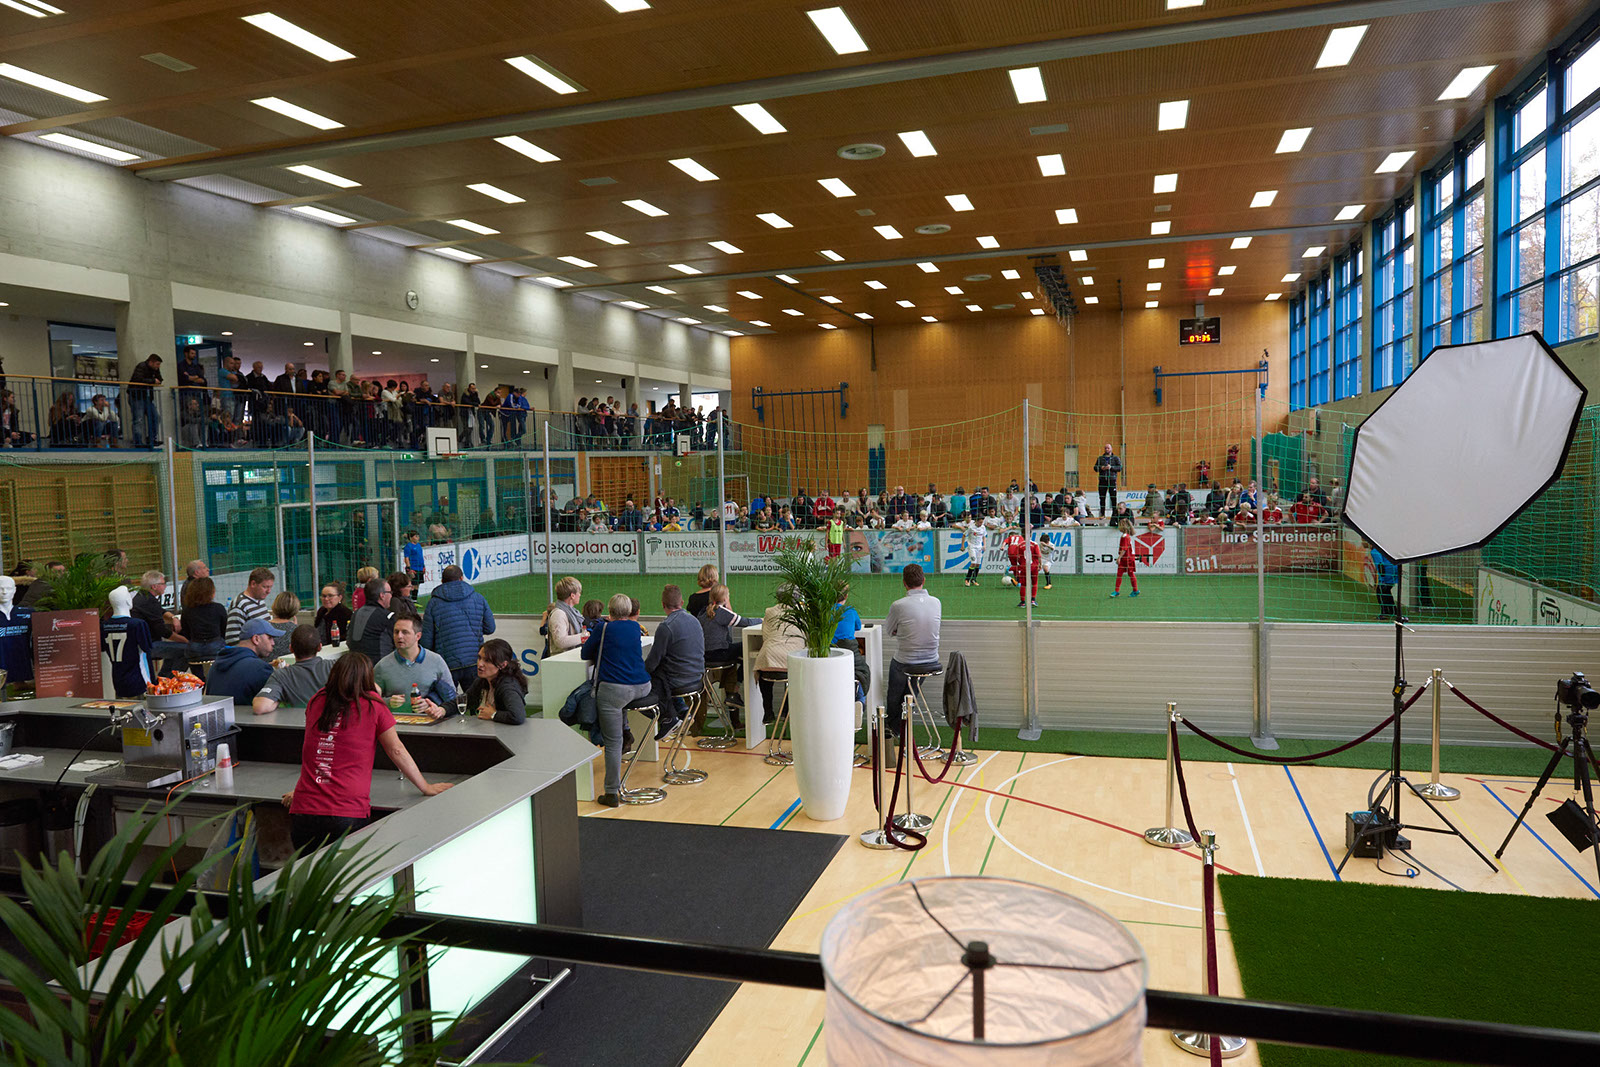 Bodensee-Cup_20171112_142016.jpg